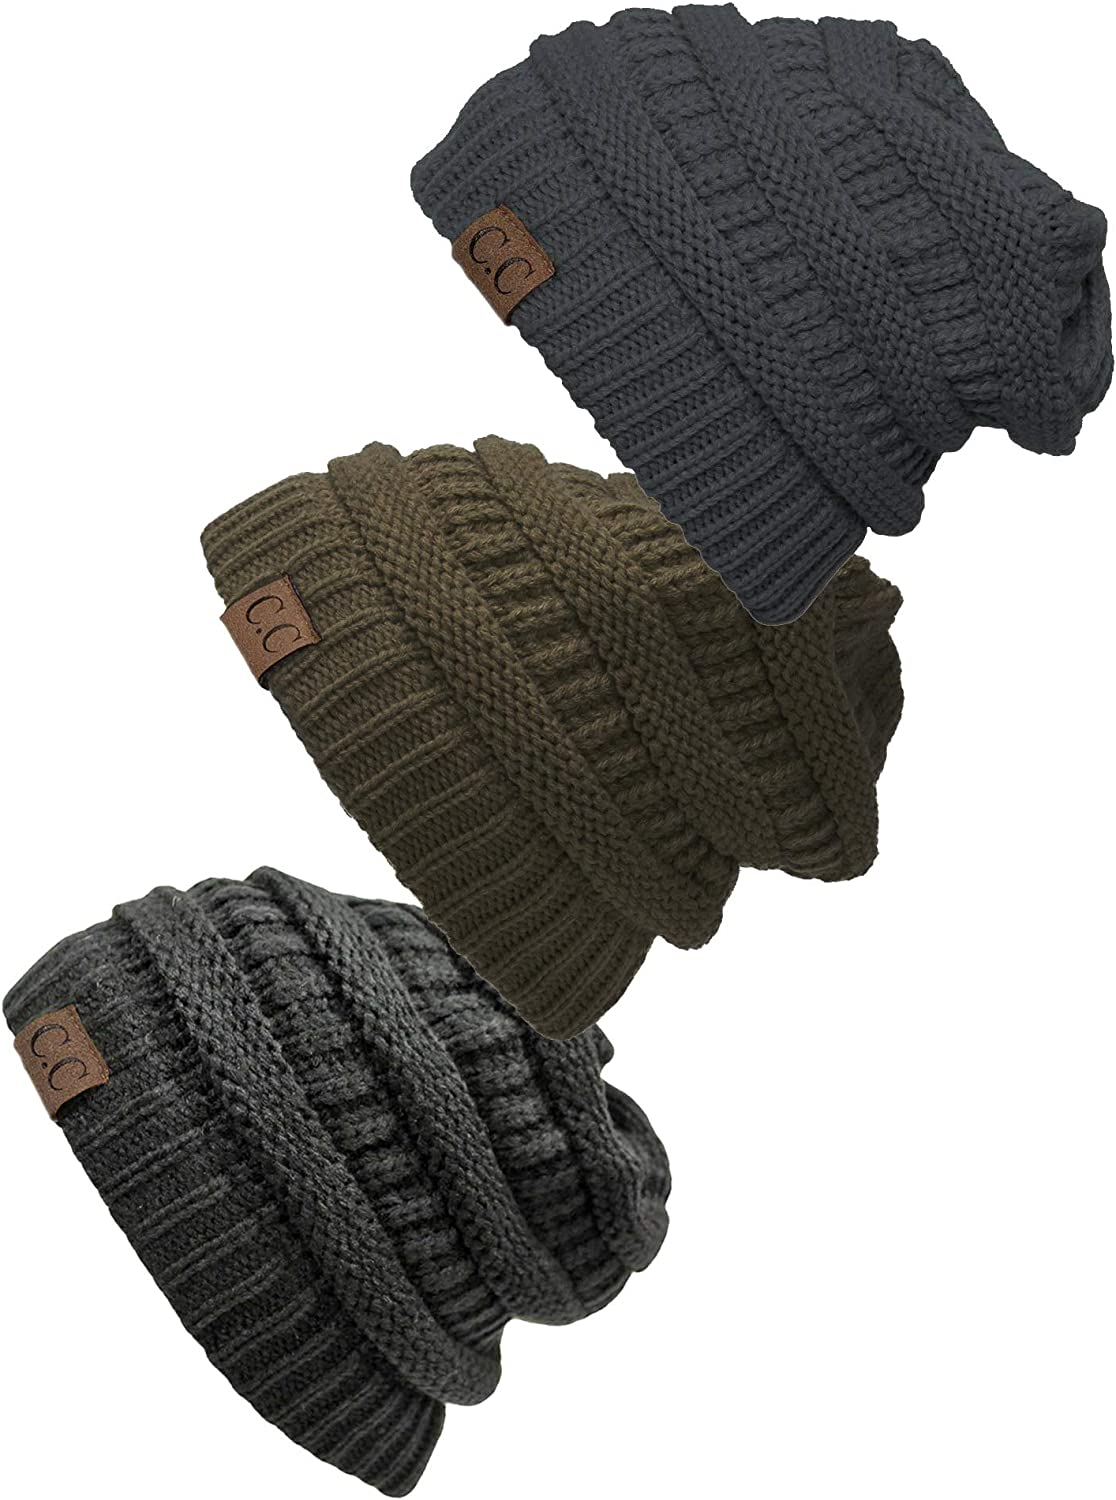 Gravity Threads Women's Max 83% OFF 3-Pack Hat Knit Beanie It is very popular Cap